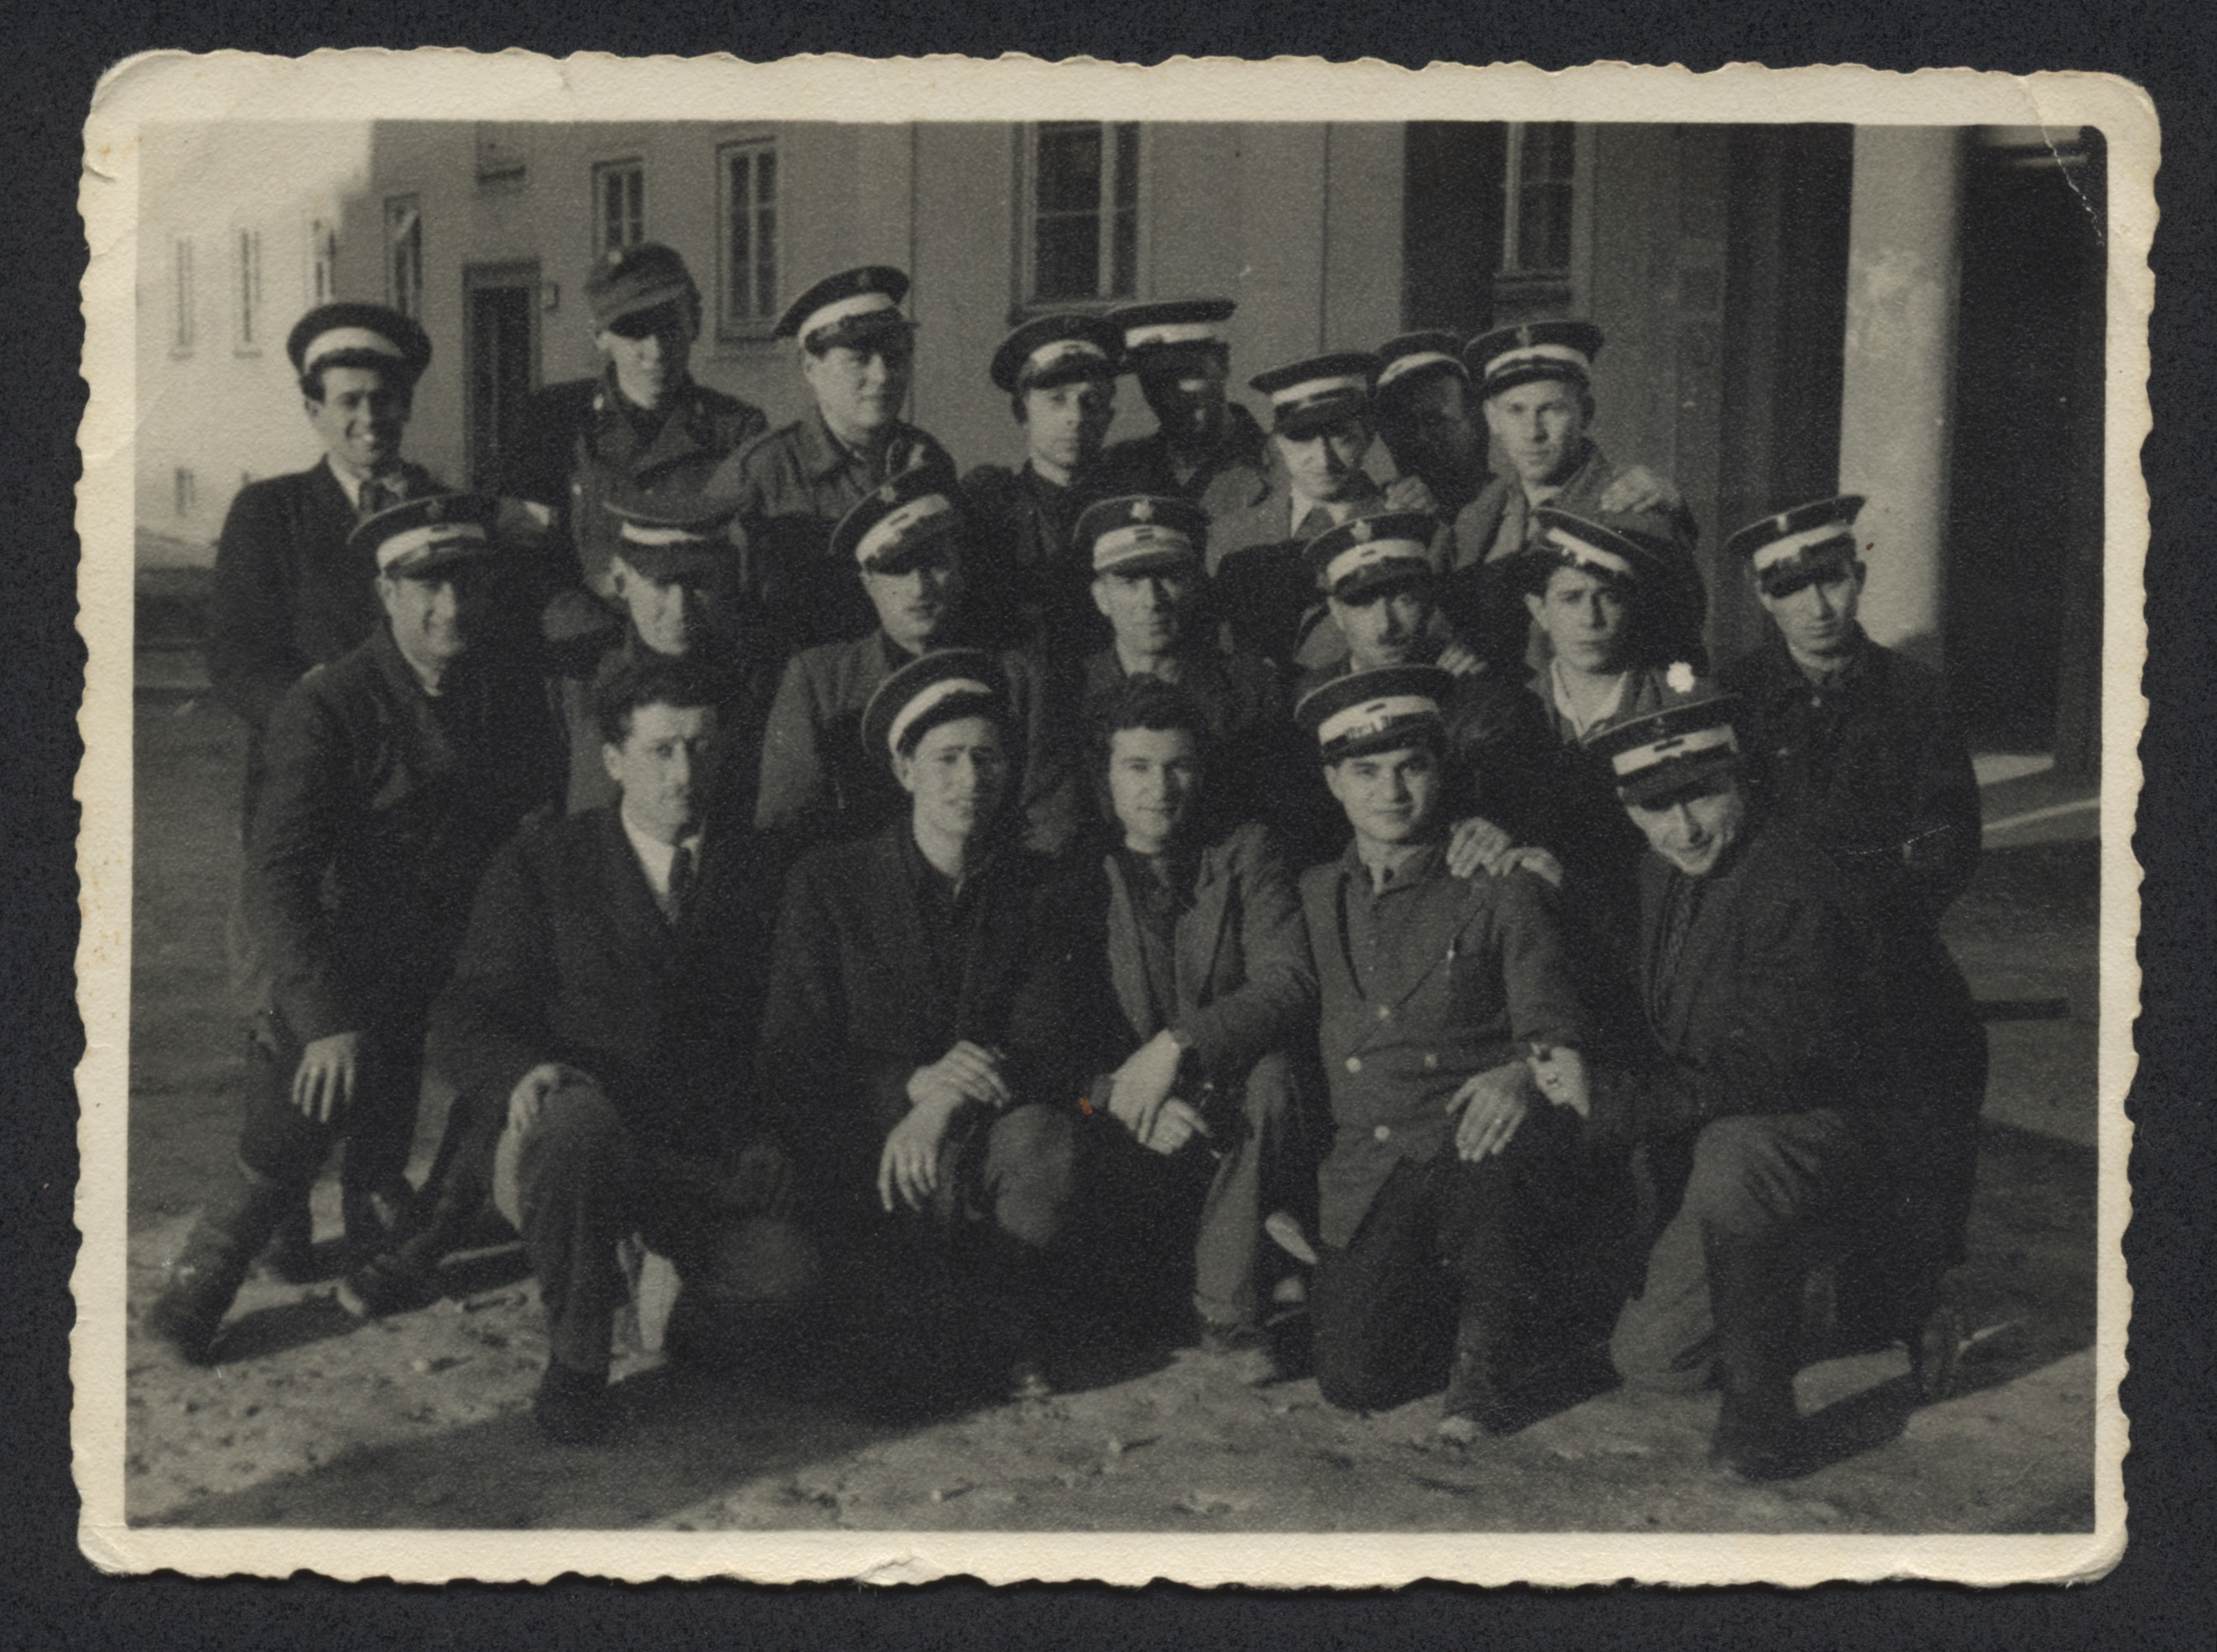 Group portrait of Jewish policemen in the Bindermichl displaced persons camp.  William Abraham is pictured in the first row, second from the right.  His brother-in-law Simon Wizel is in the second row, second in from the right.